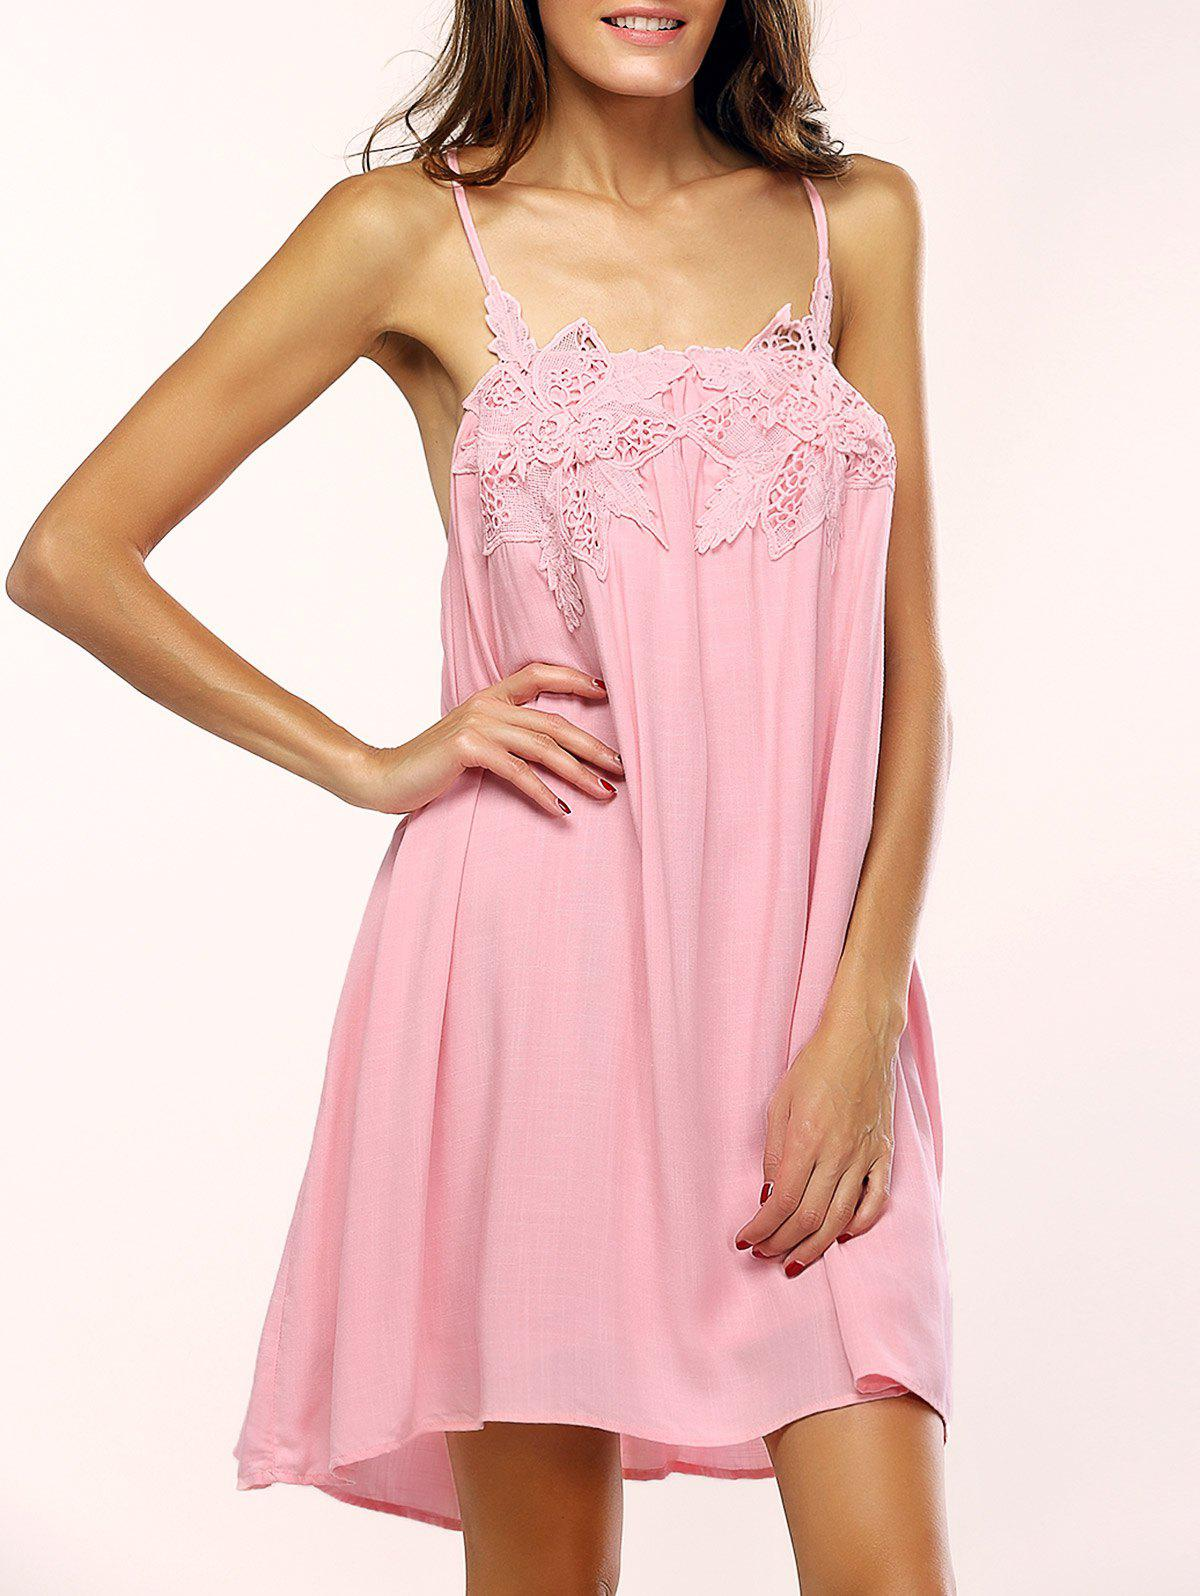 Charming Spaghetti Strap Floral Backless Dress For Women - PINK L